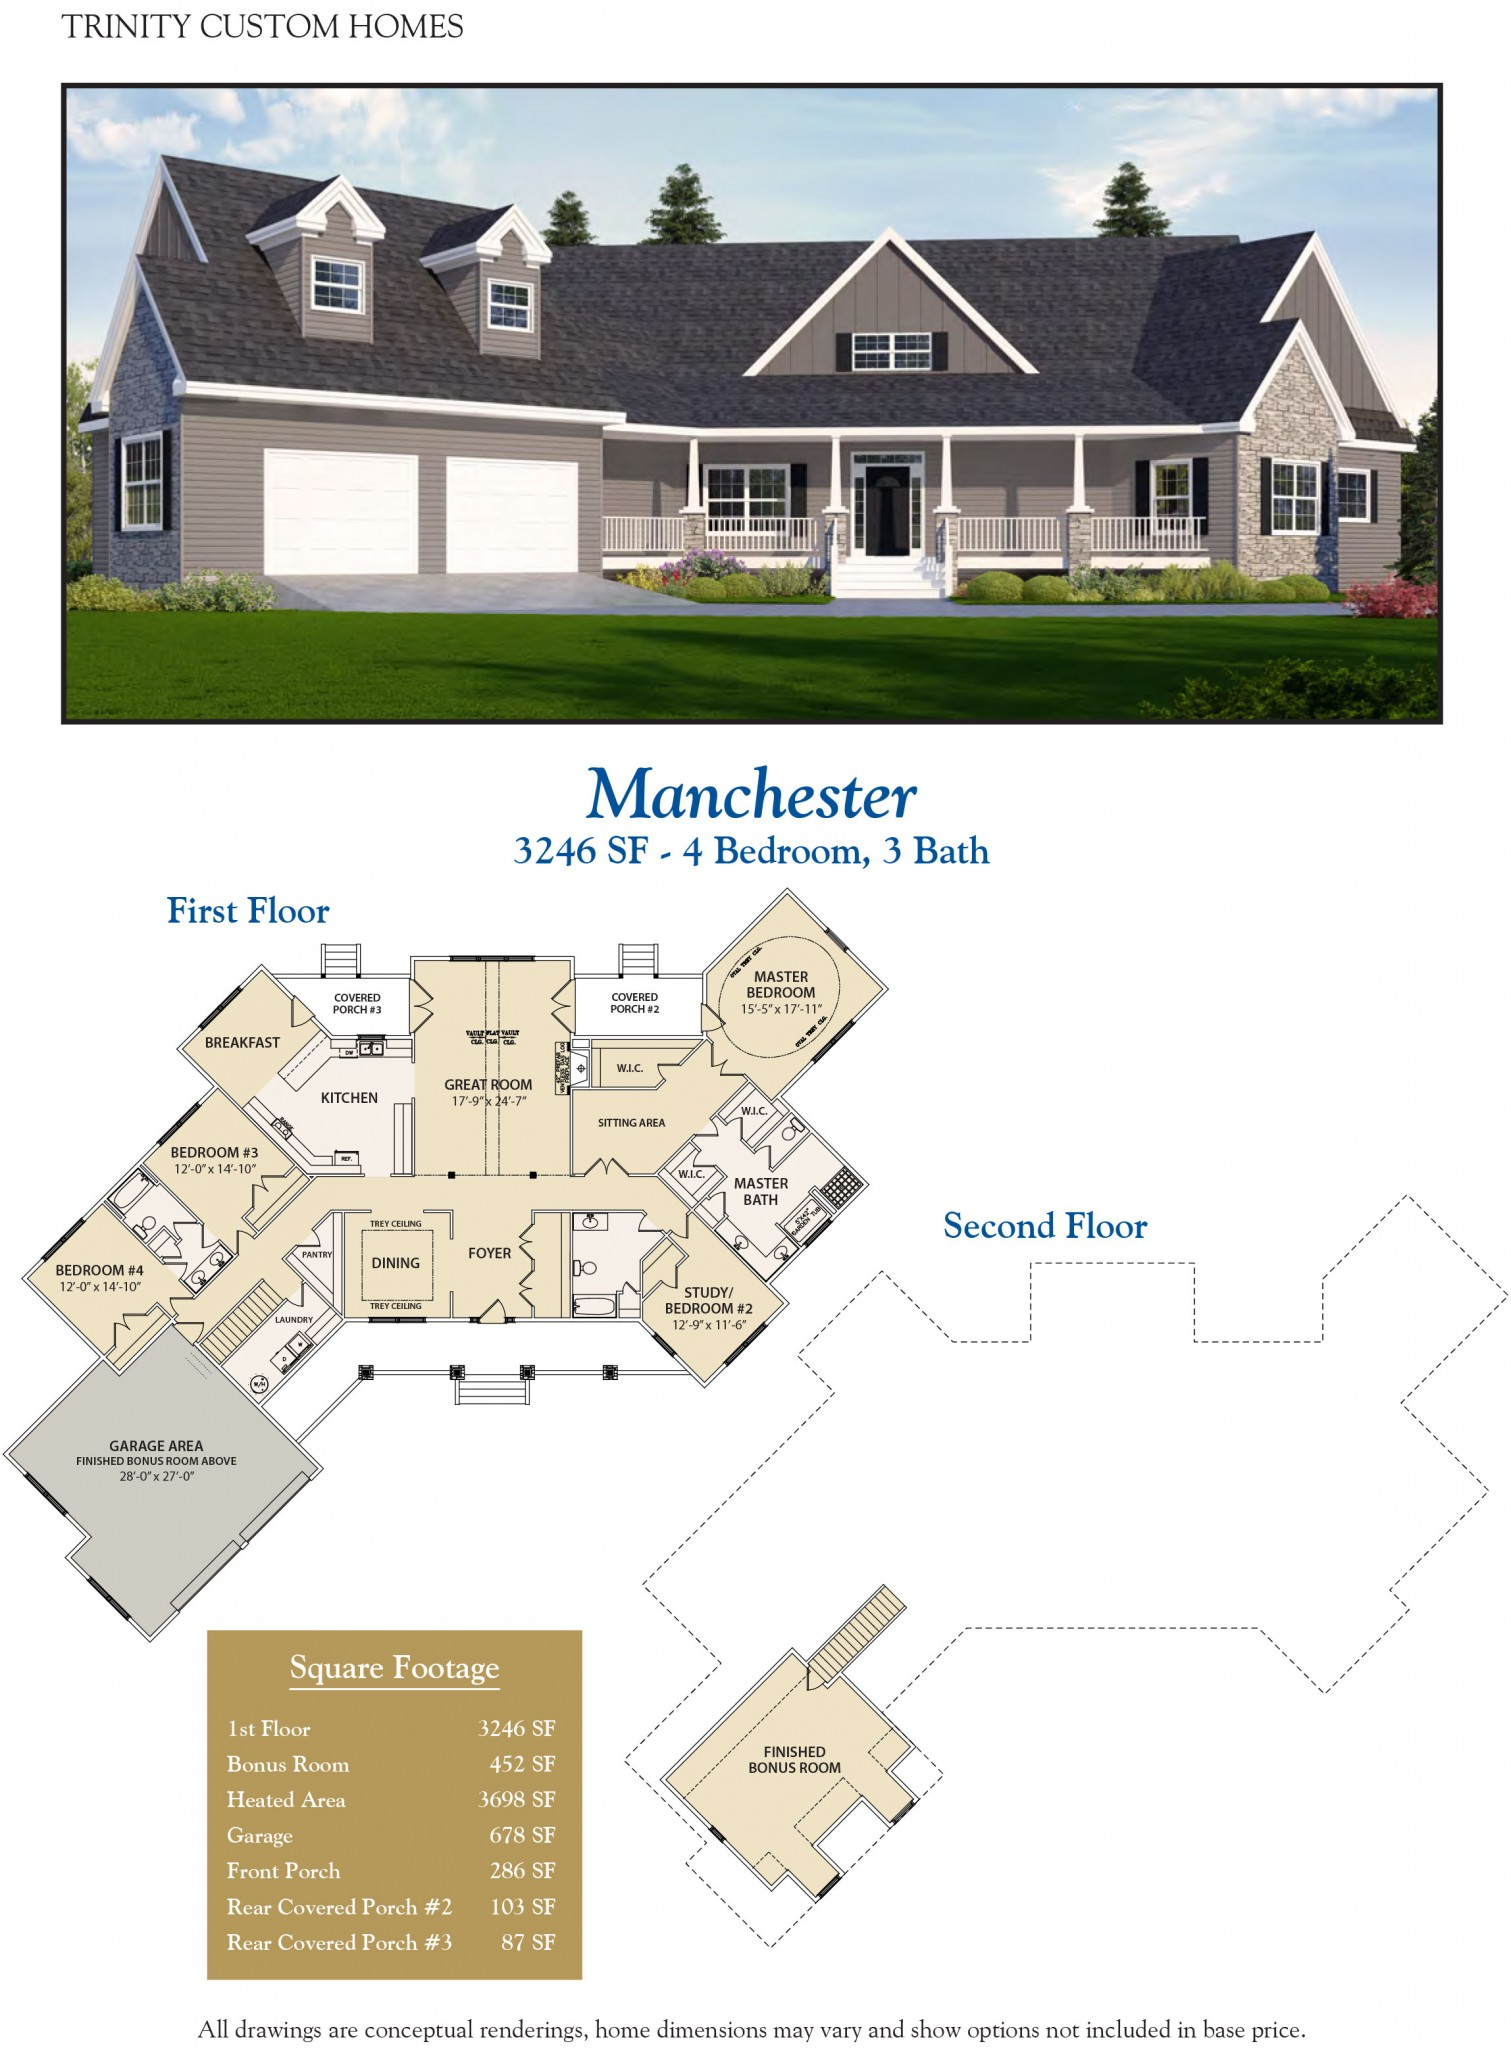 Manchester welcome to trinity custom homes for Trinity house plans